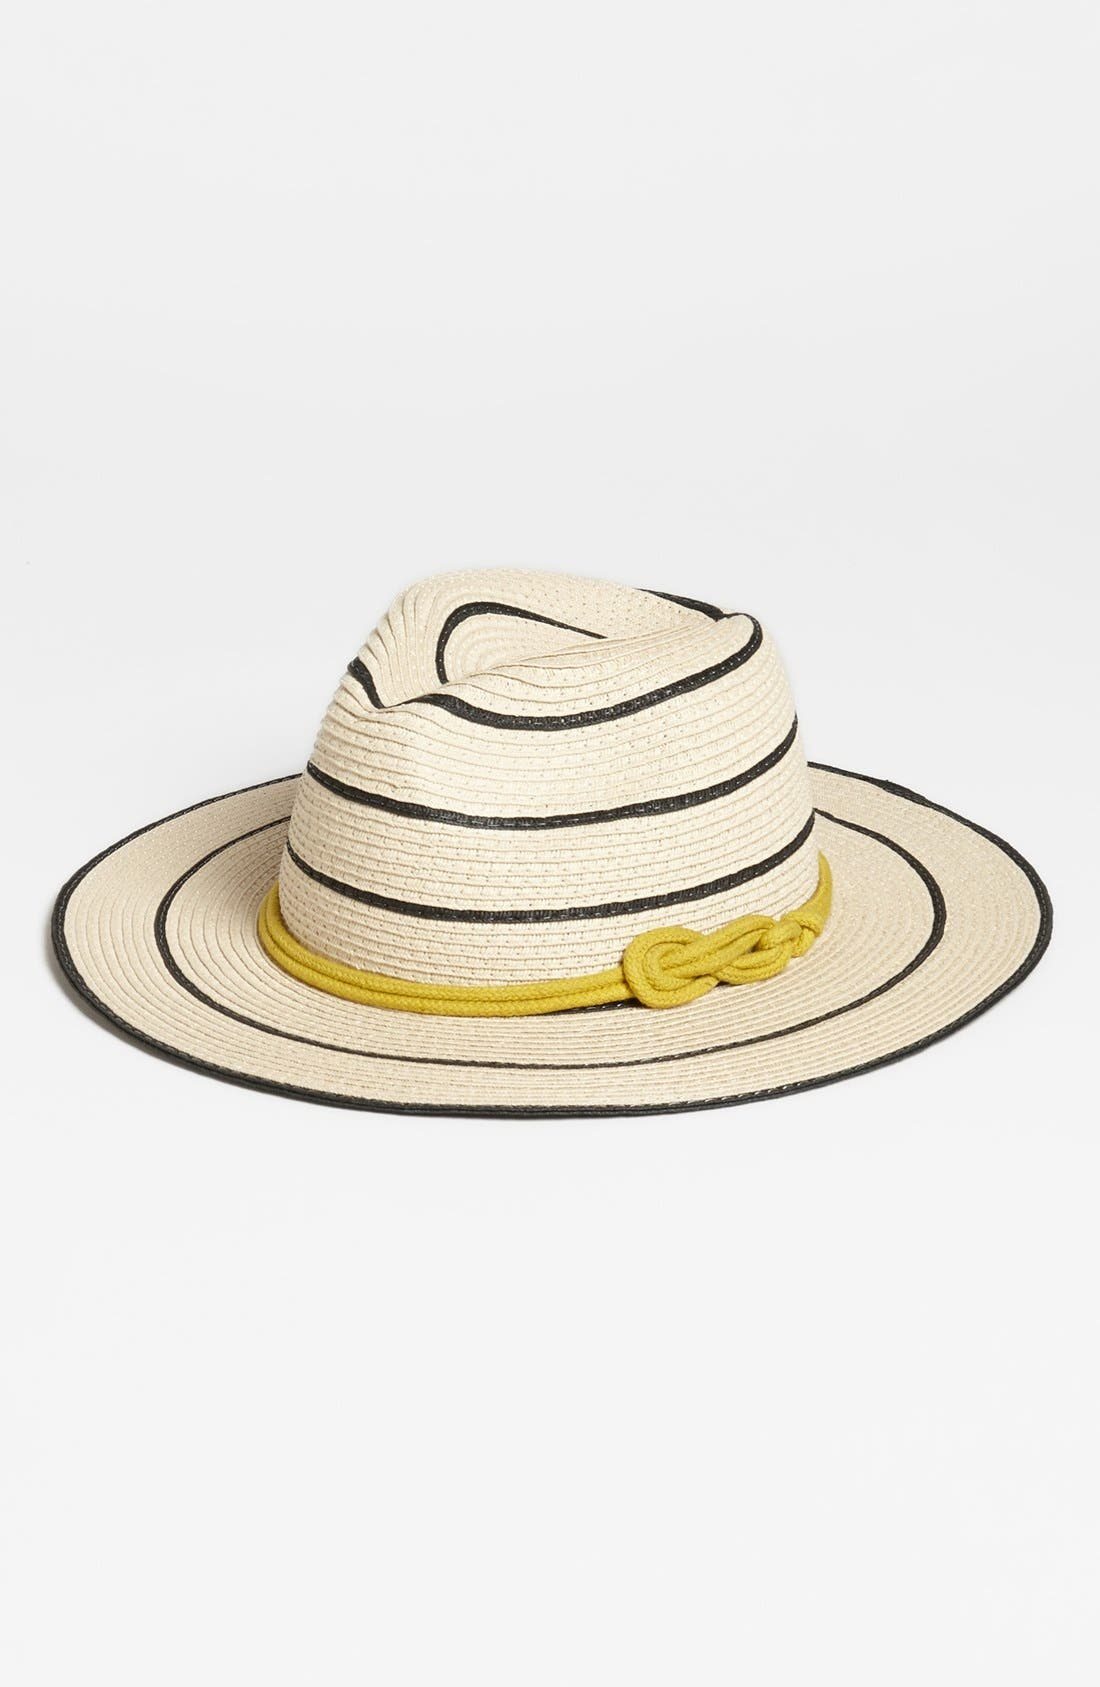 Alternate Image 1 Selected - BP. Mini Panama Hat